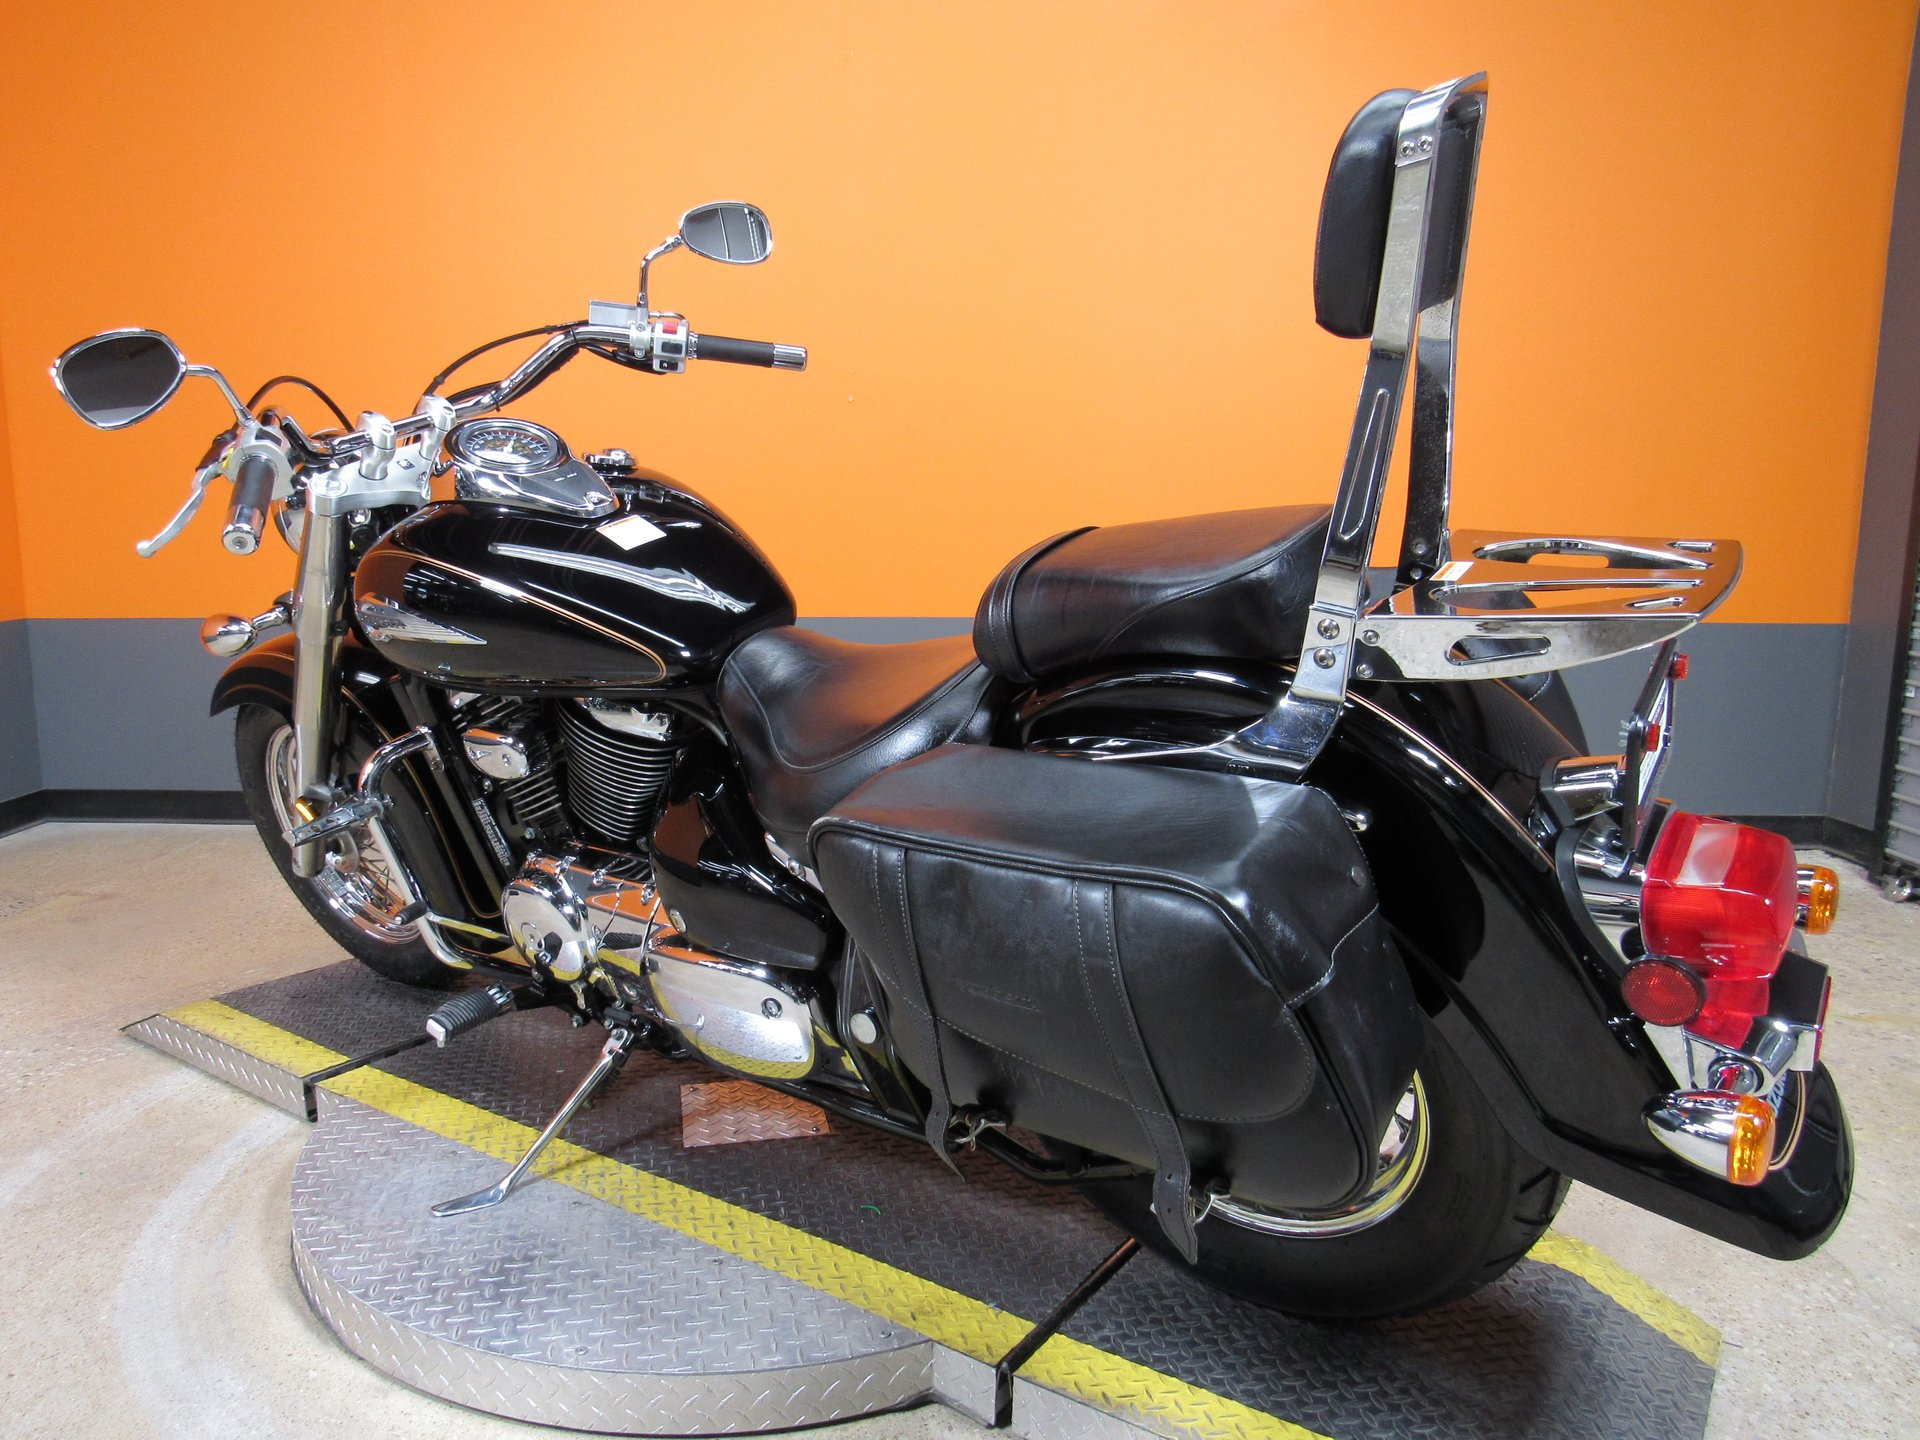 2004 Suzuki Volusia Intruder -VL800 for sale #5430 | Motorious